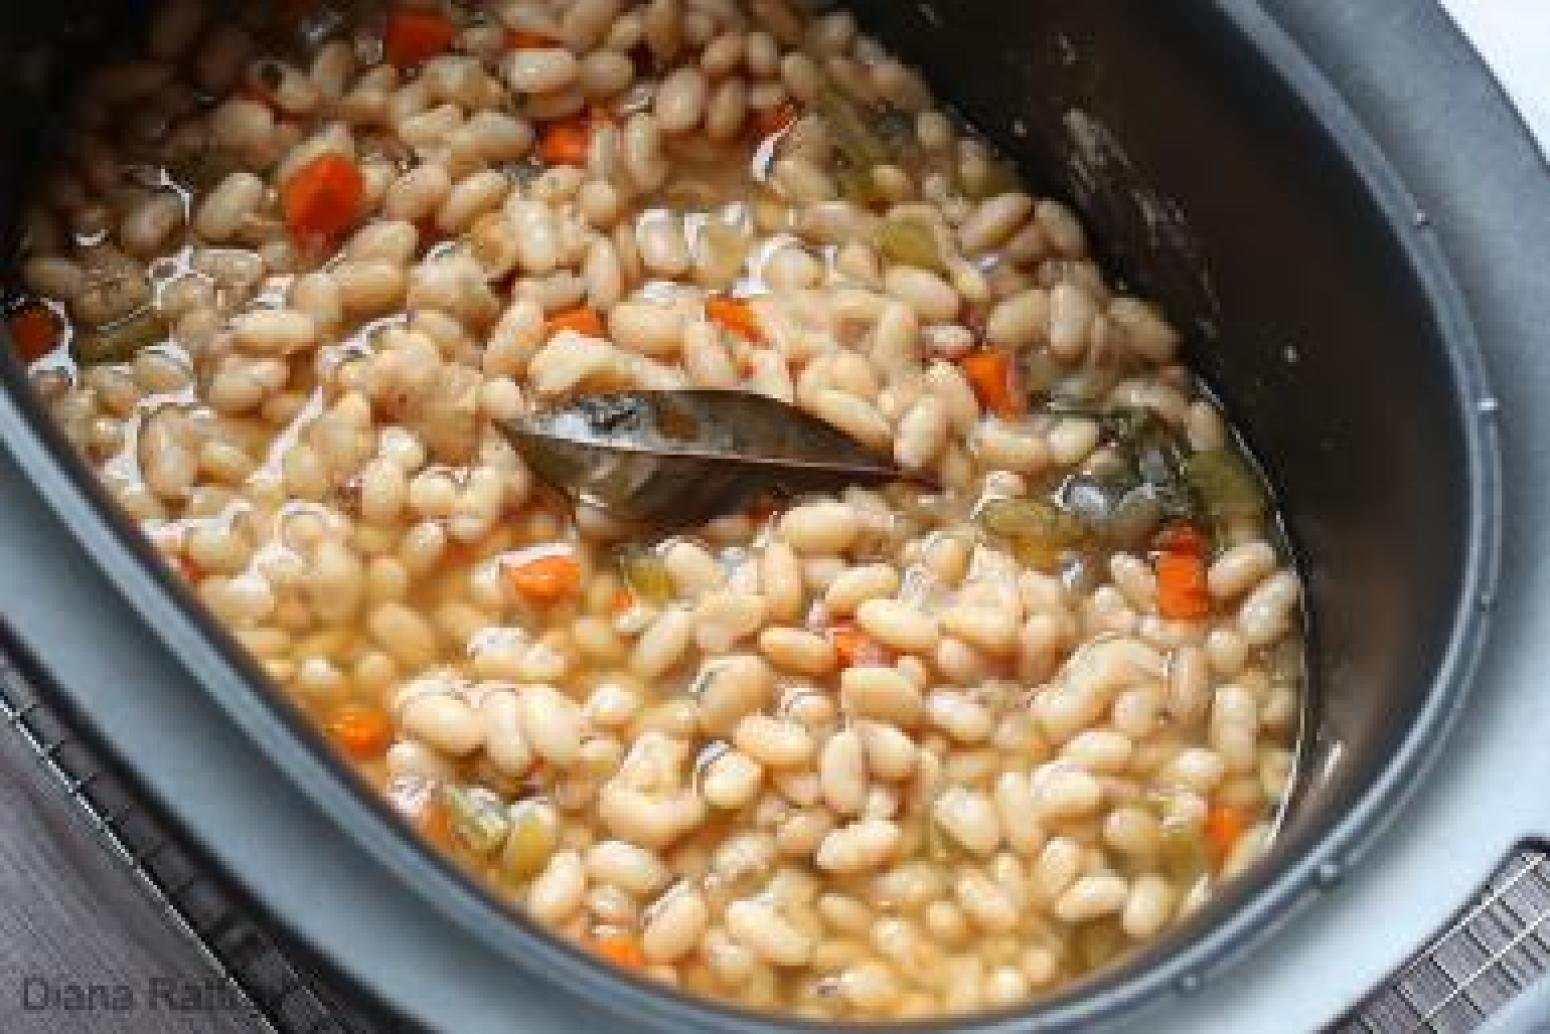 Homemade Great Northern Beans From Your Slow Cooker Recipe | Just A ...